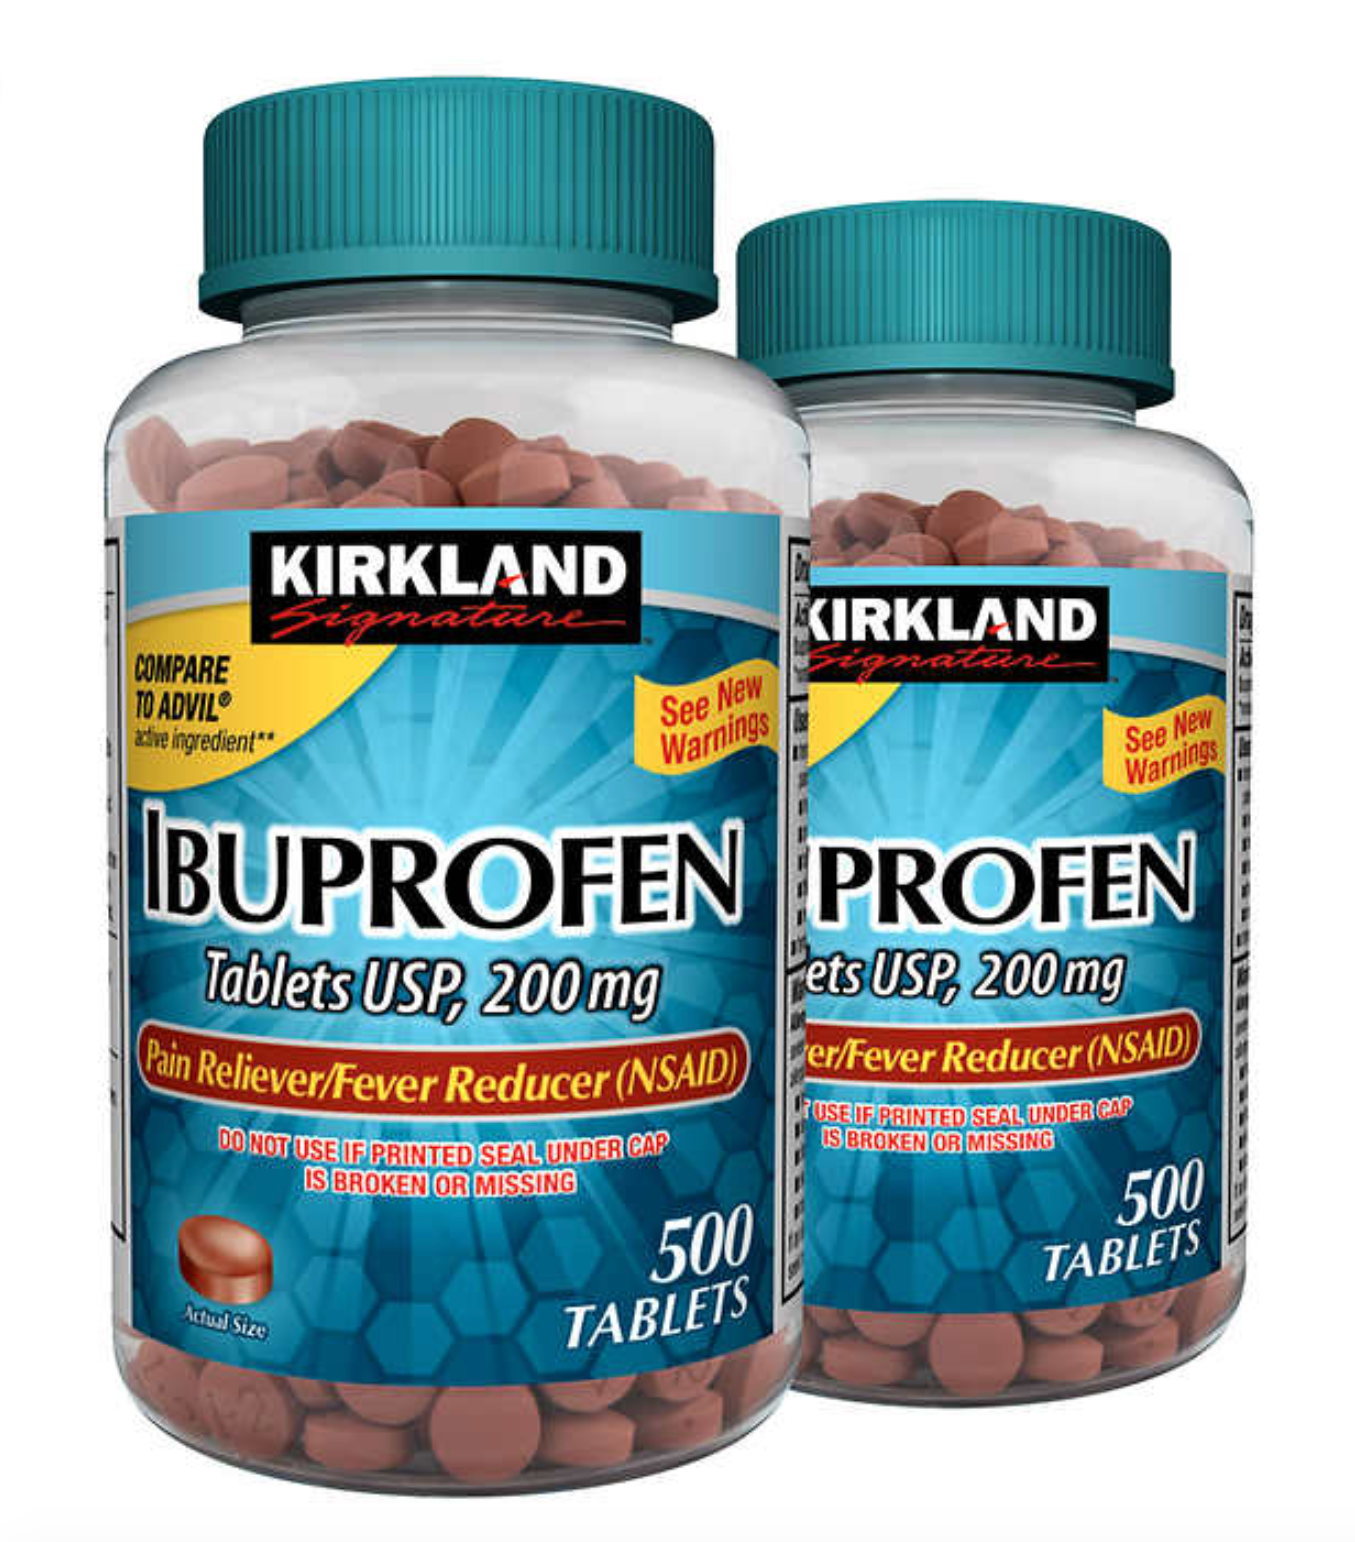 Kirkland Signature Ibuprofen, 200 mg, 1,000 Tablets